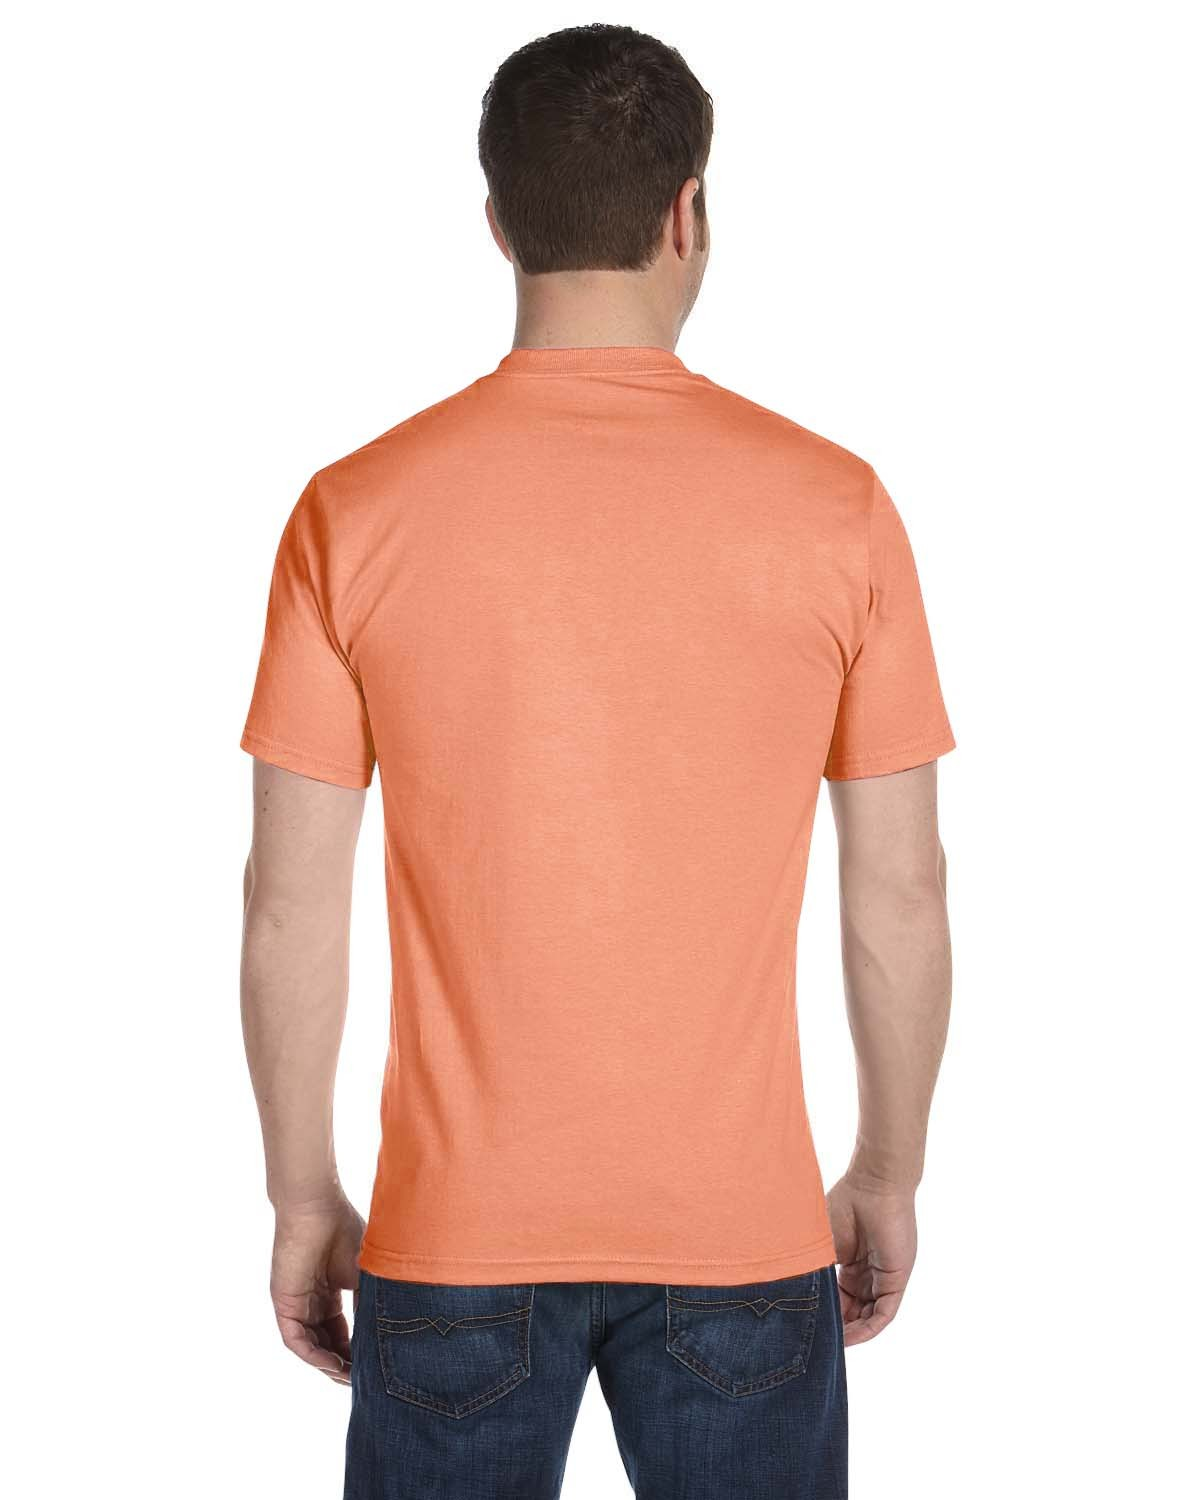 5180 Hanes CANDY ORANGE